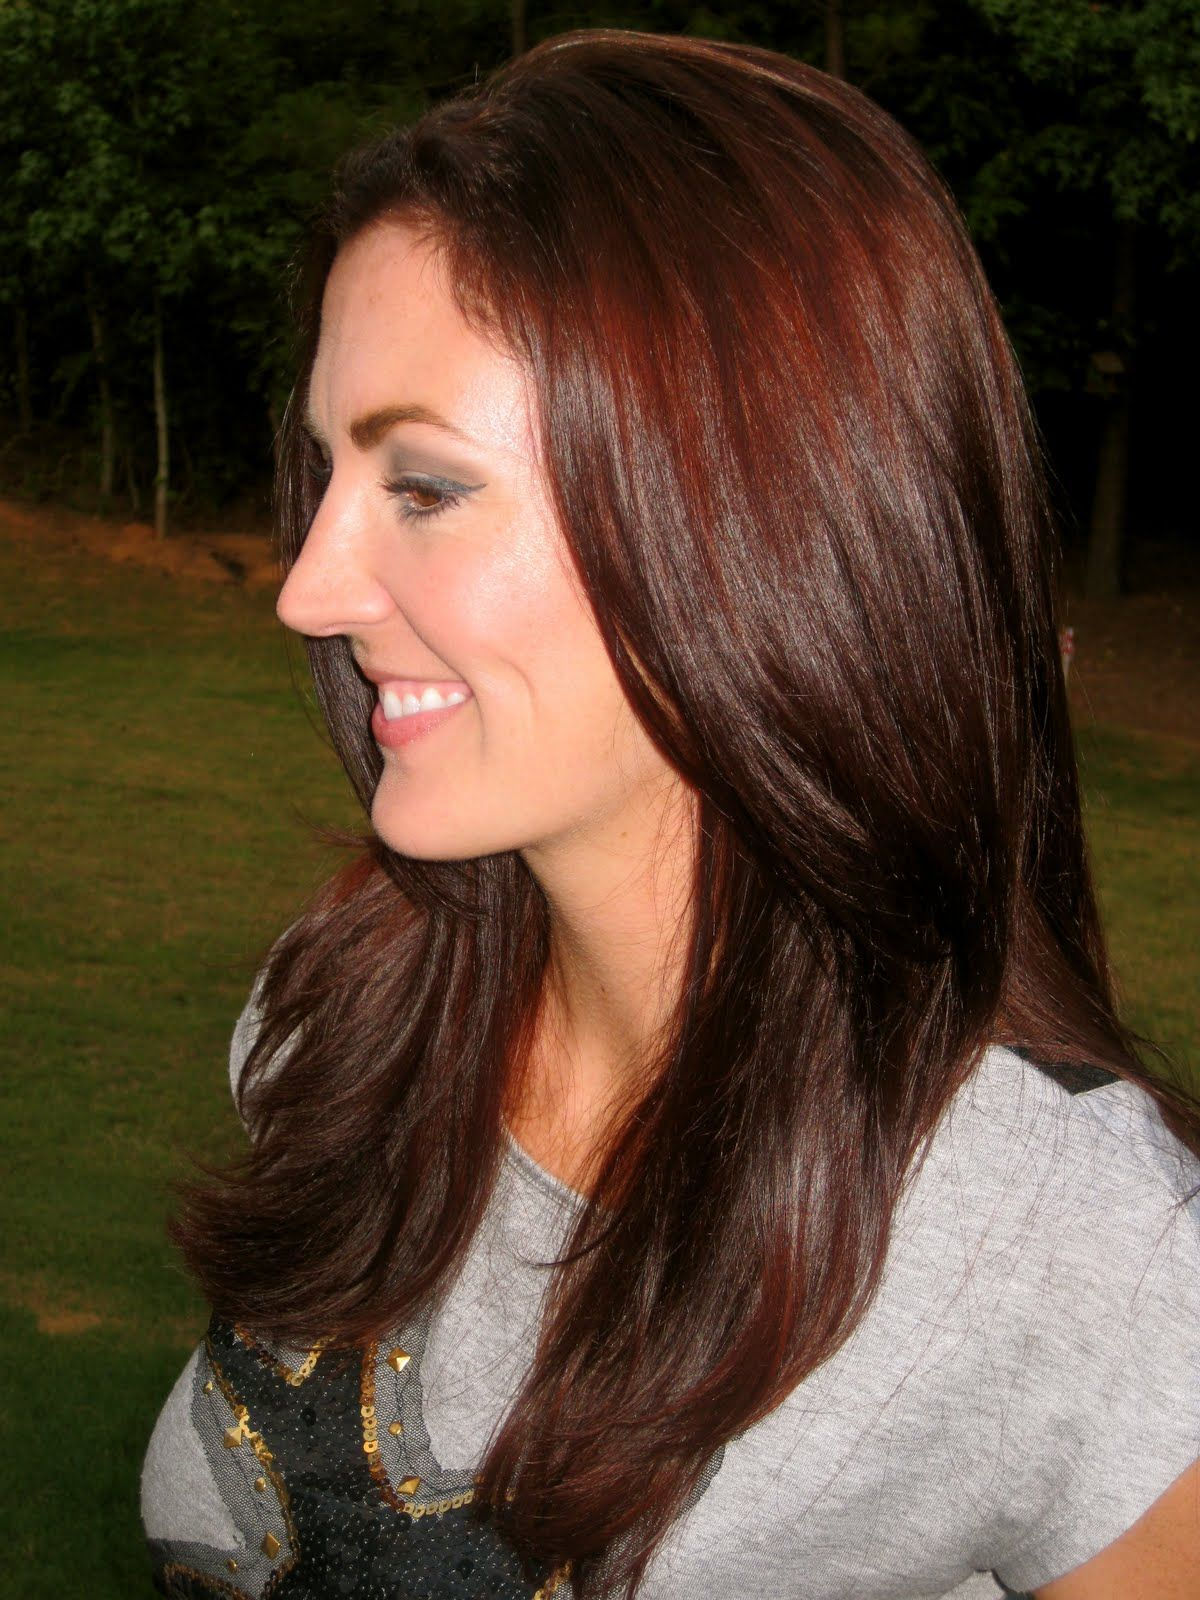 Auburn Hair So Pretty If I Could Dye My Hair This Would